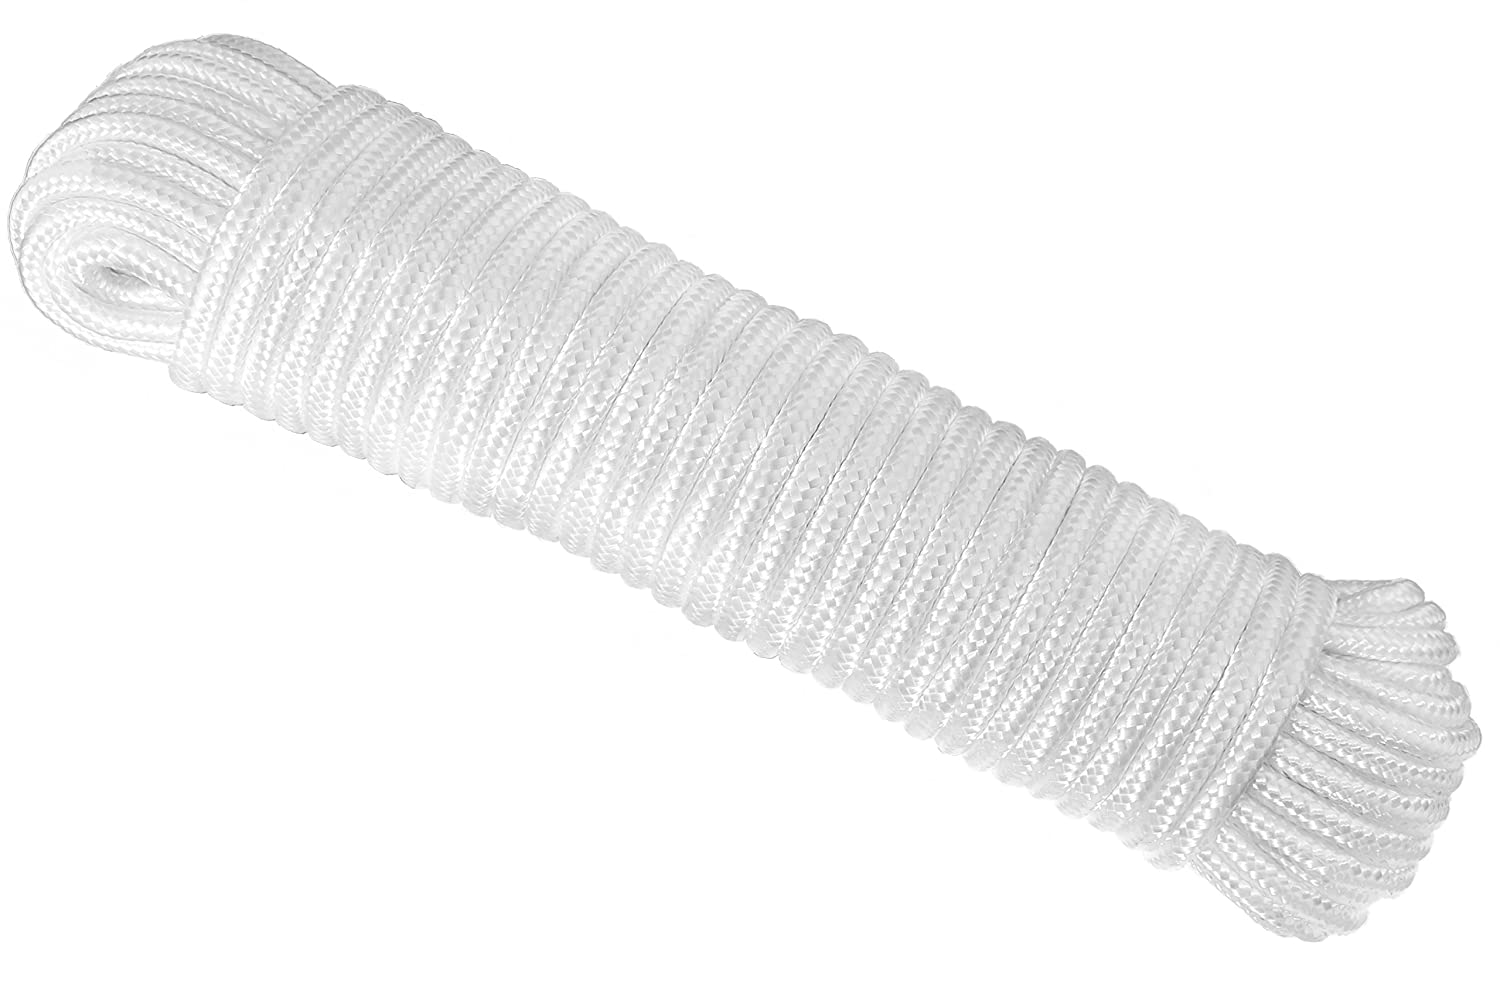 UV Resistant and Excellent Shock Absorption Diamond Braid Polypropylene All Purpose Flagline Rope High Strength RAM-PRO 80 ft Thickness /¼ inch Good for Tie Pull Climb and Knot Mix N More Inc 2394 Swing